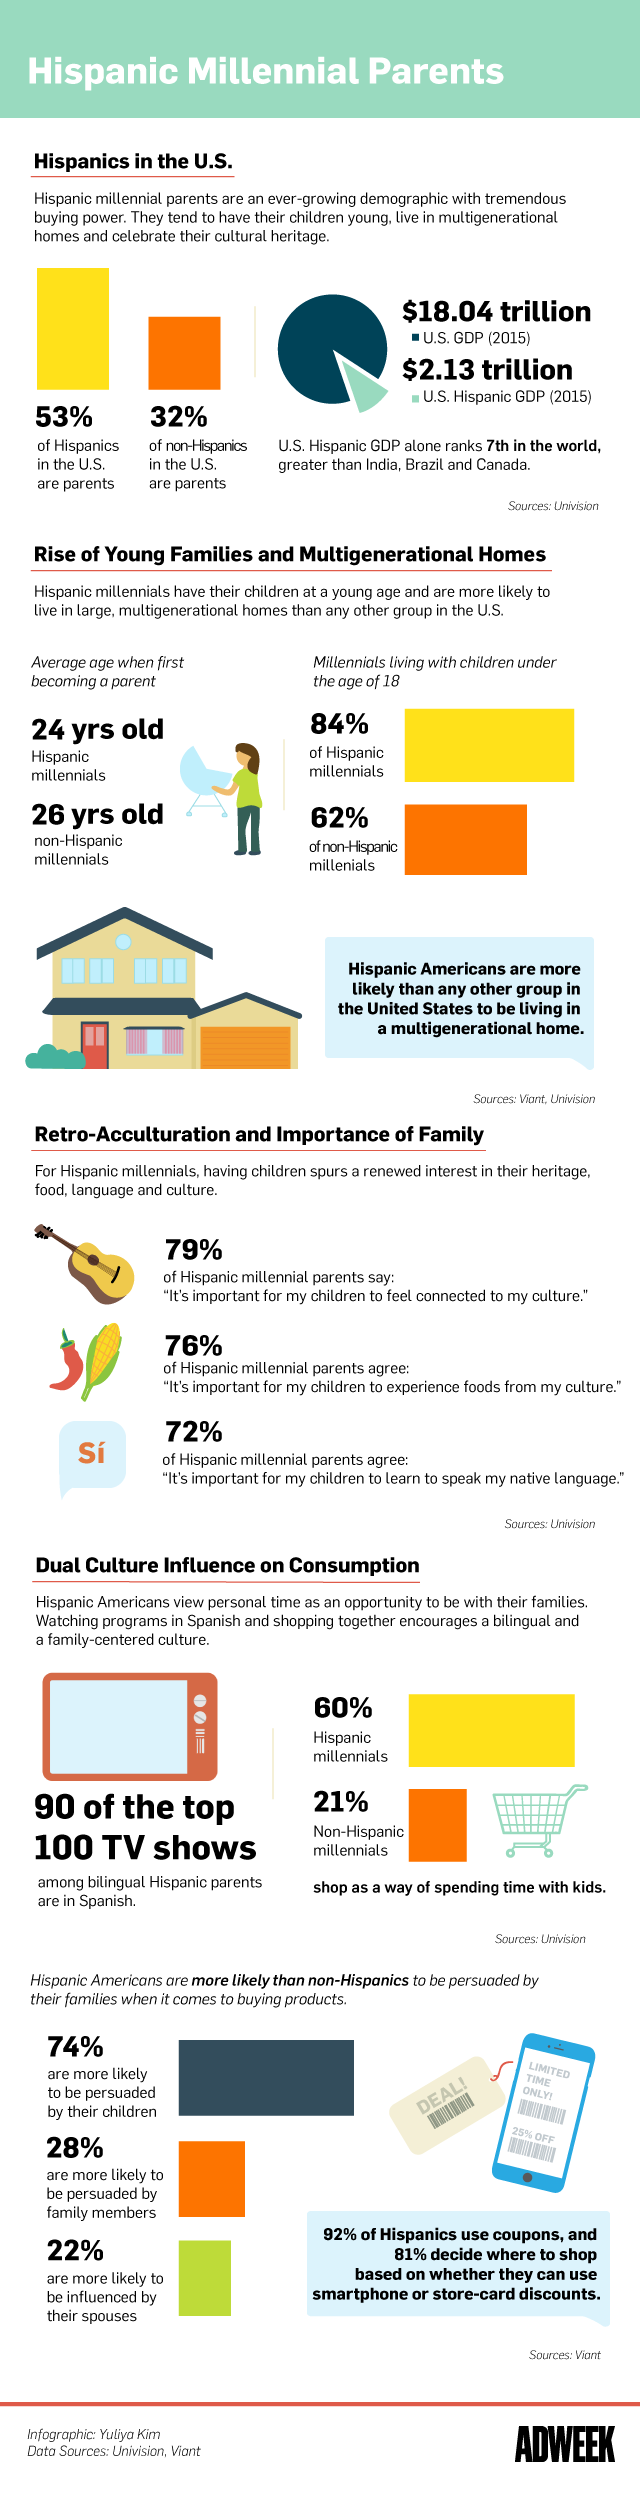 infographic-hispanic-millennial-parents-FINAL2.png